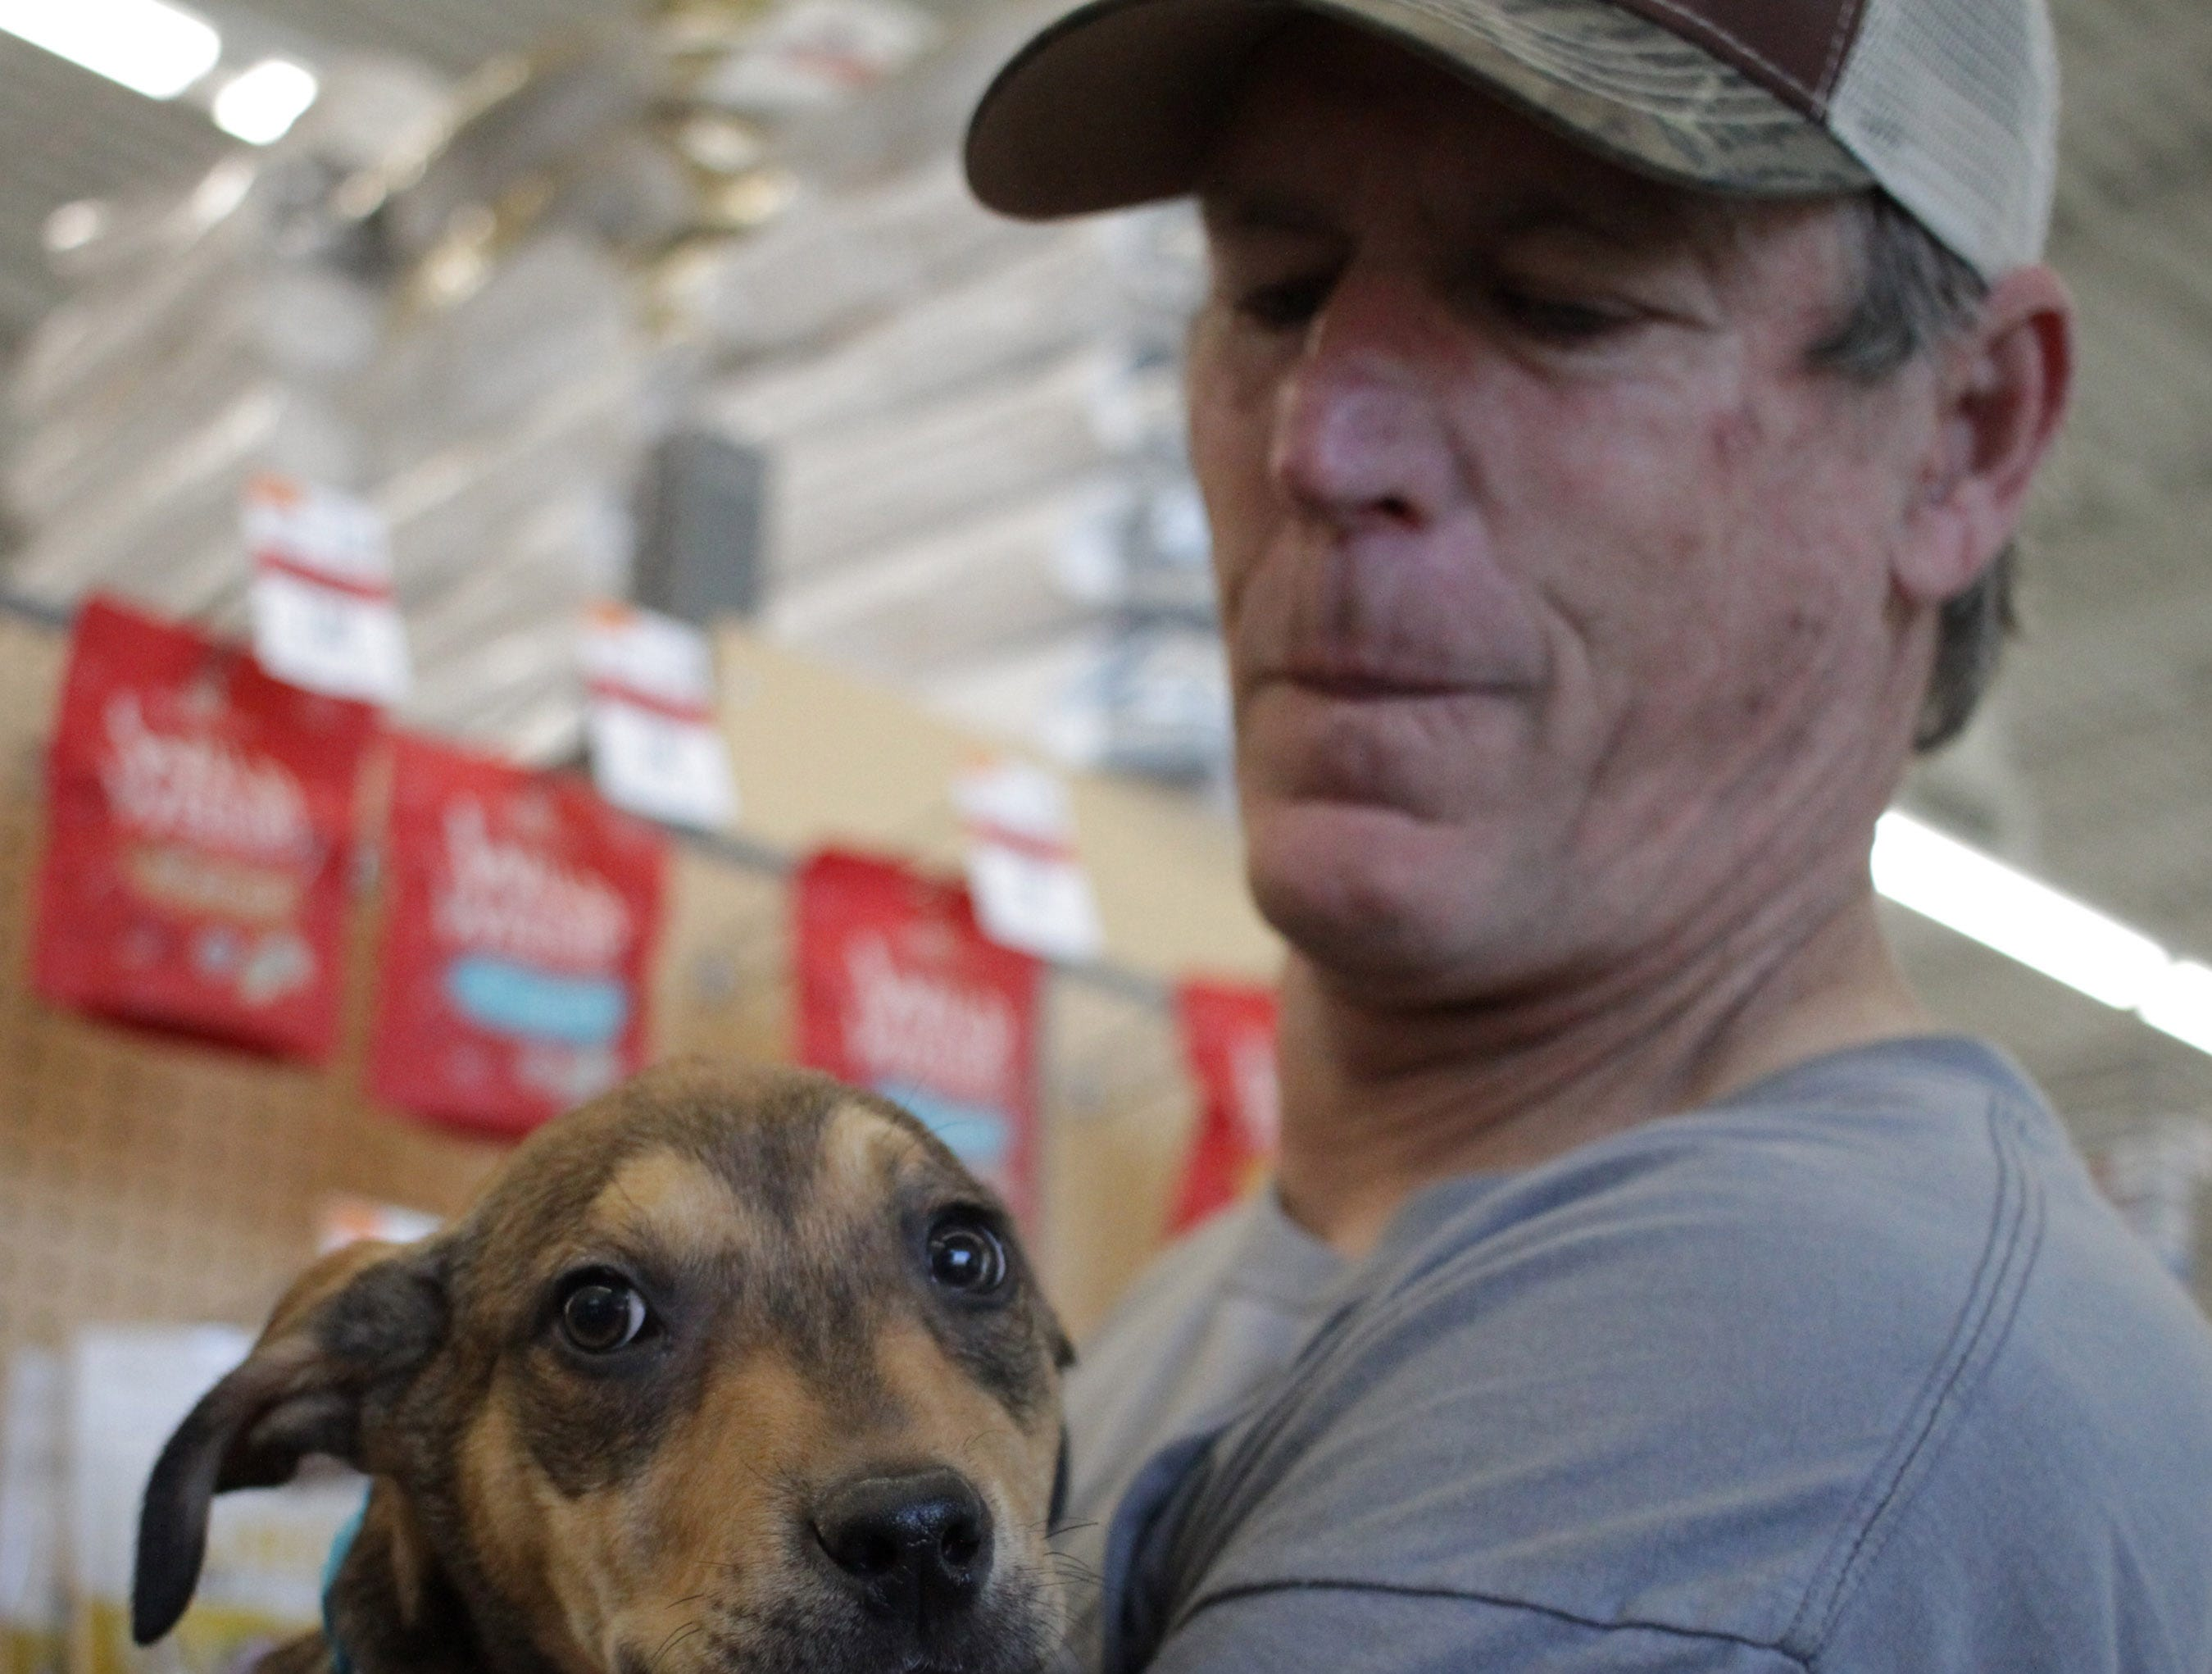 Mark Stalling holds a puppy at Jojo's Doghouse adoption event at Pet Supplies Plus in Hendersonville, TN on Saturday, January 5, 2019.